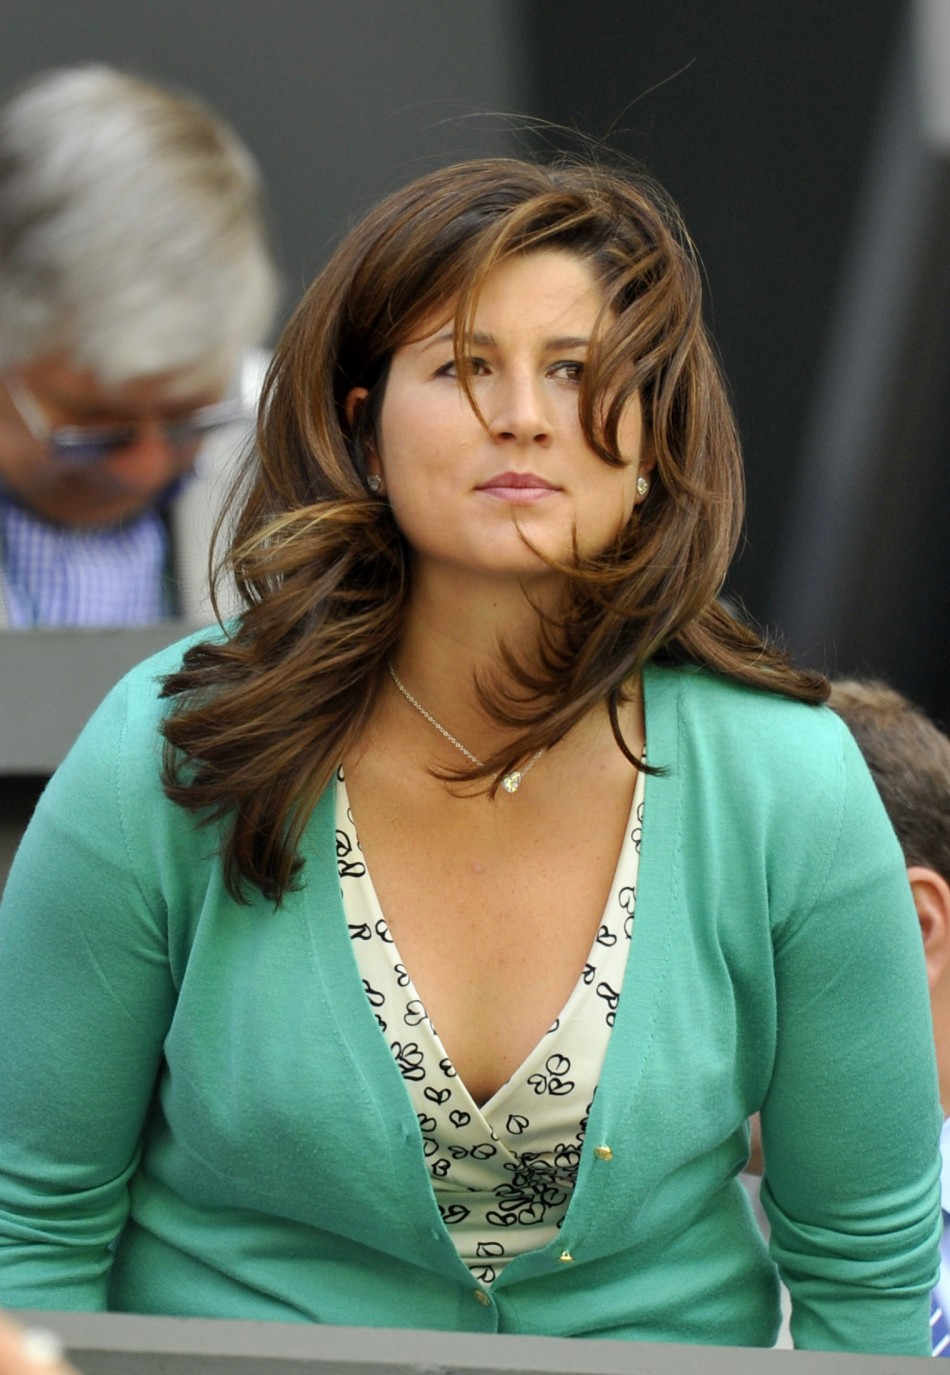 mirka federer nude sex photos